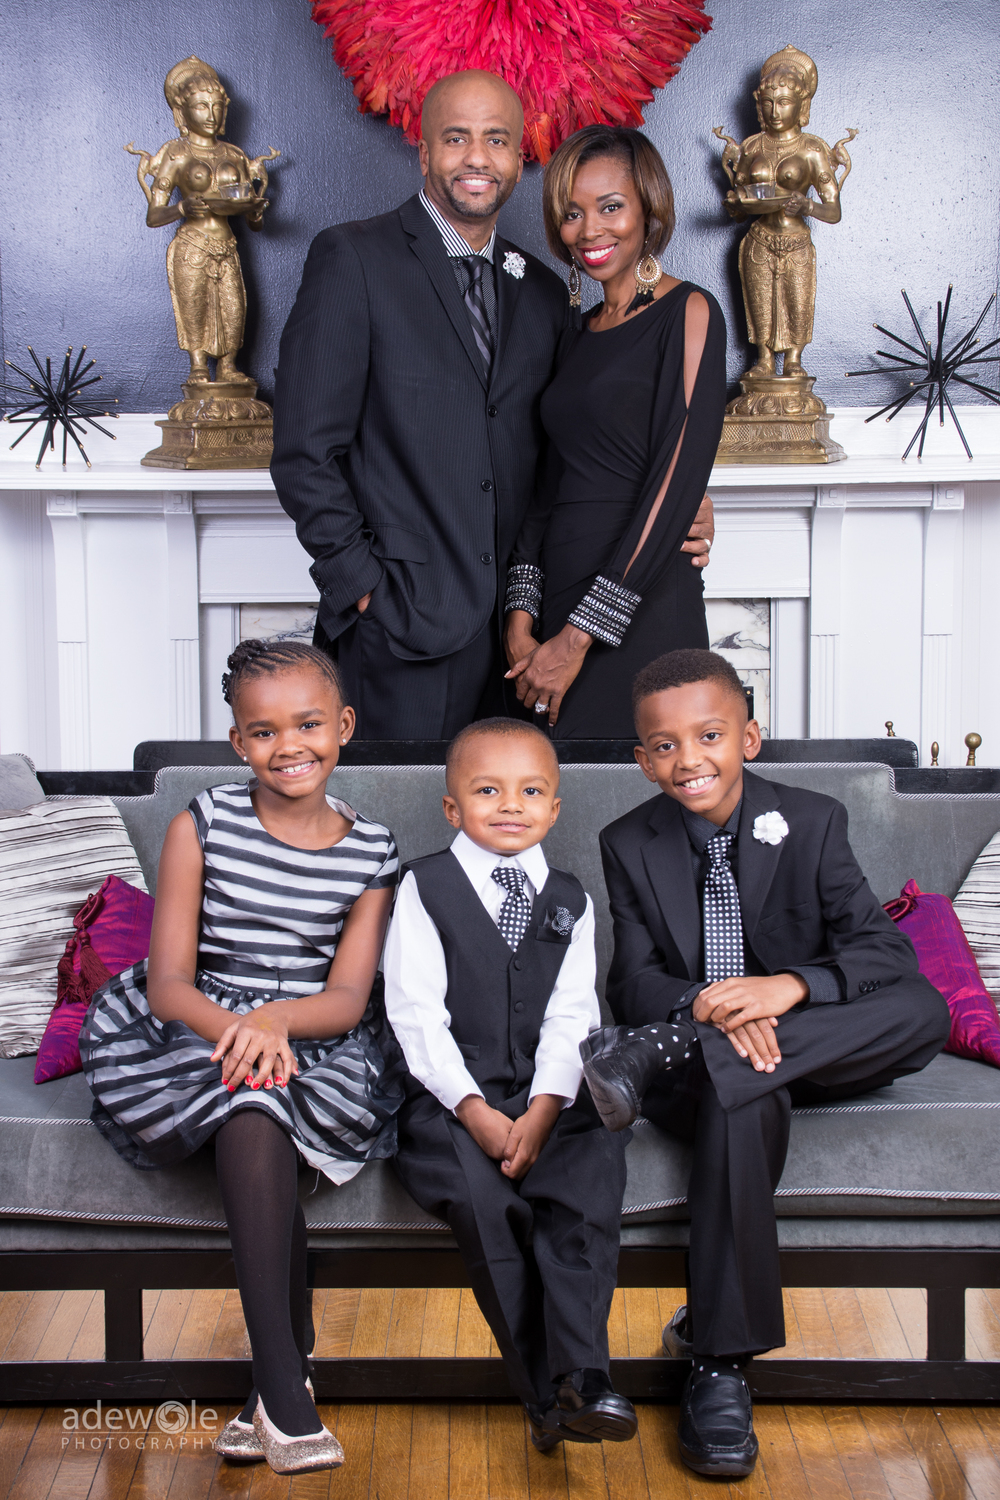 The Parkers - Adewole Photography-11.jpg